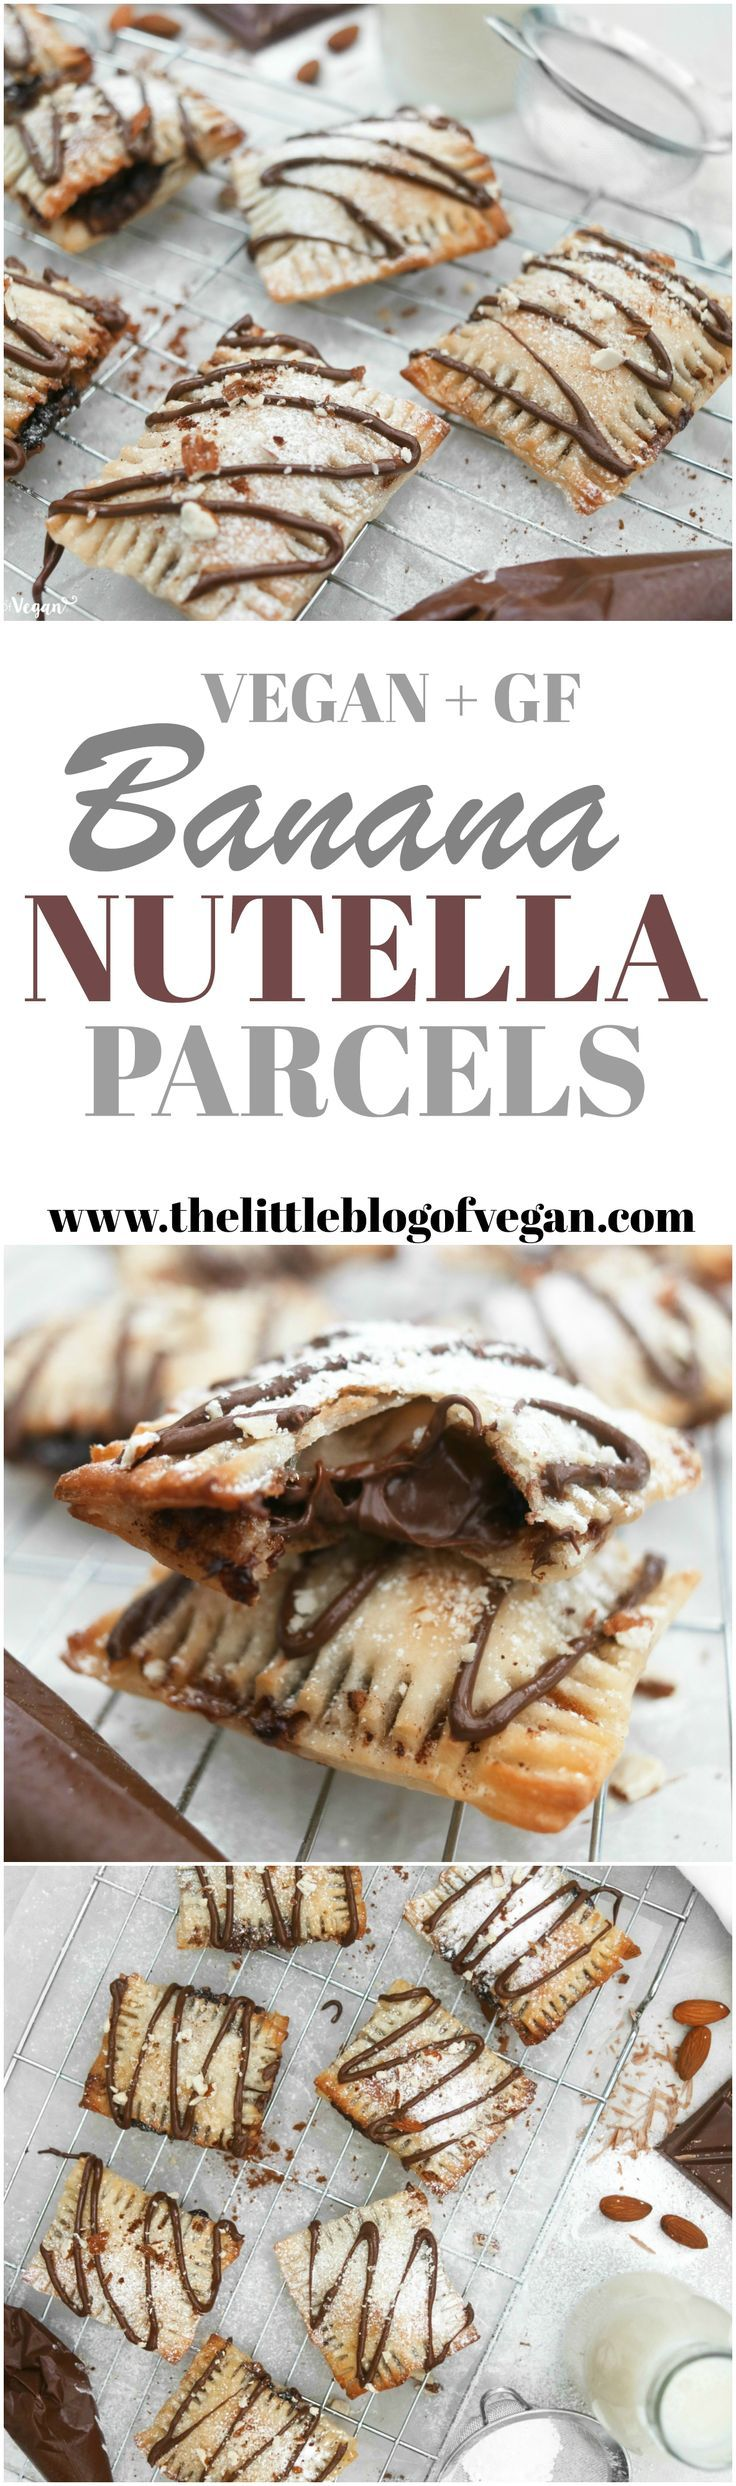 Vegan + gluten-free nutella and banana puff pastry parcels! Only 3 ingredients